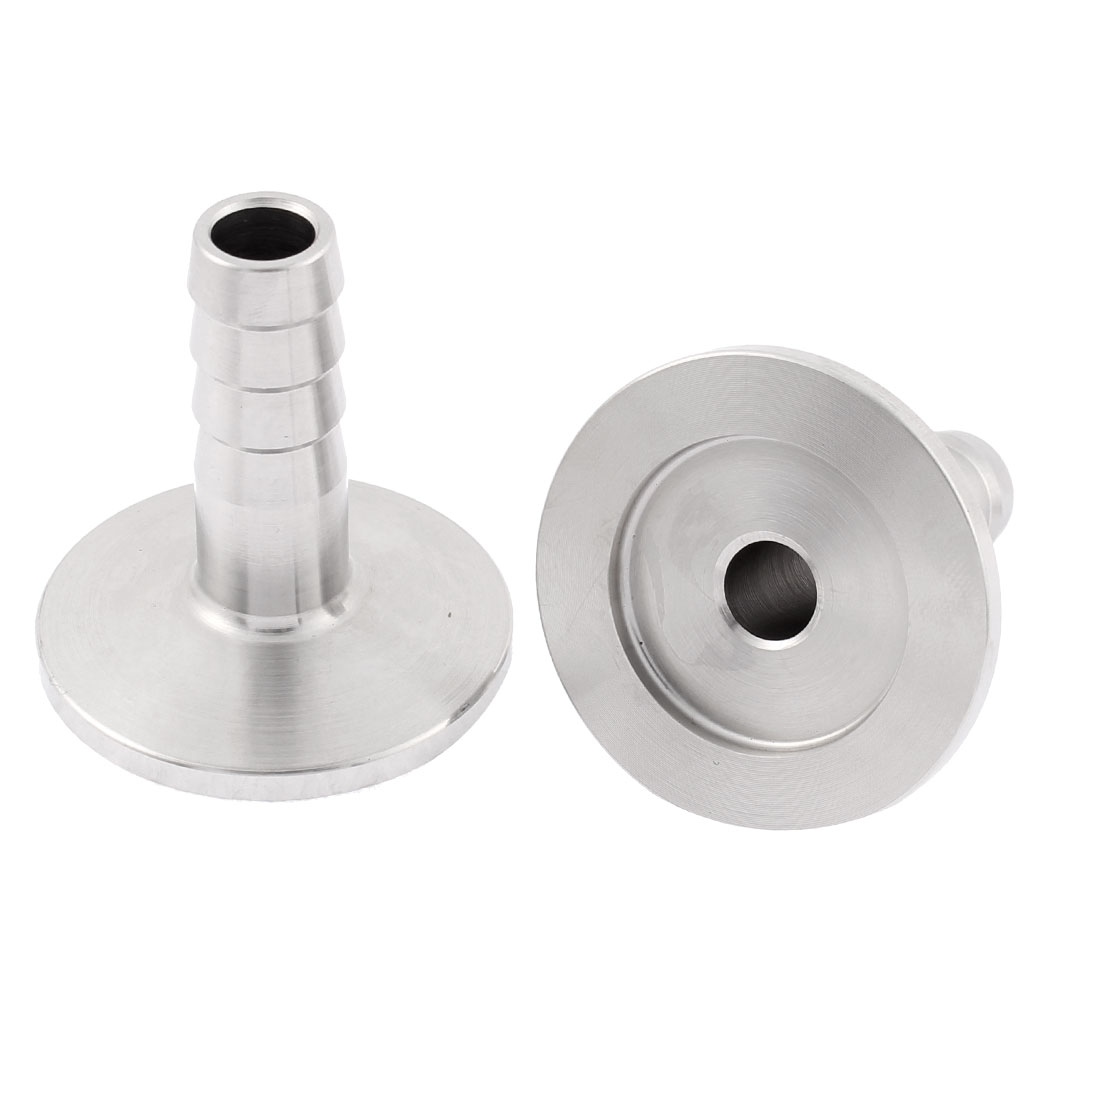 Stainless Steel 304 KF25 Flange Hose Barb Adapter 2Pcs